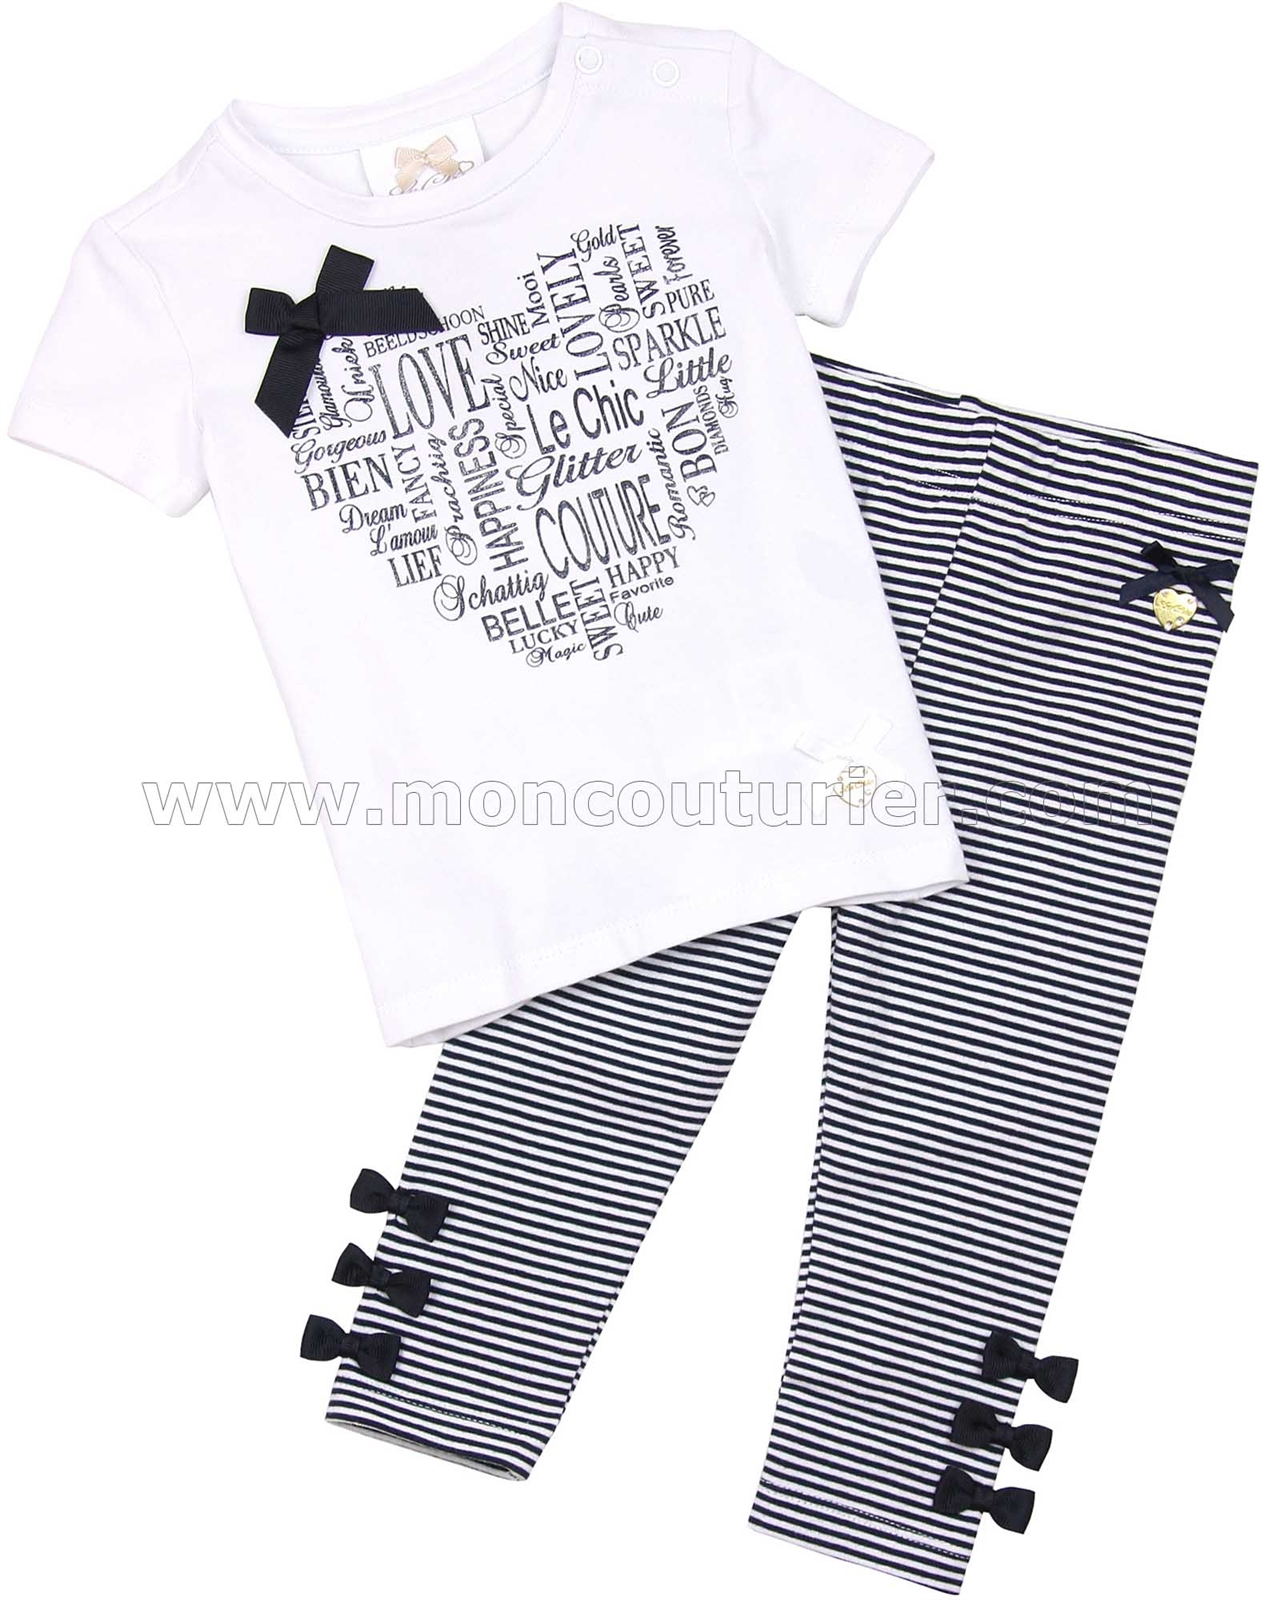 Sizes 12M-24M Le Chic Baby Girls Striped Leggings